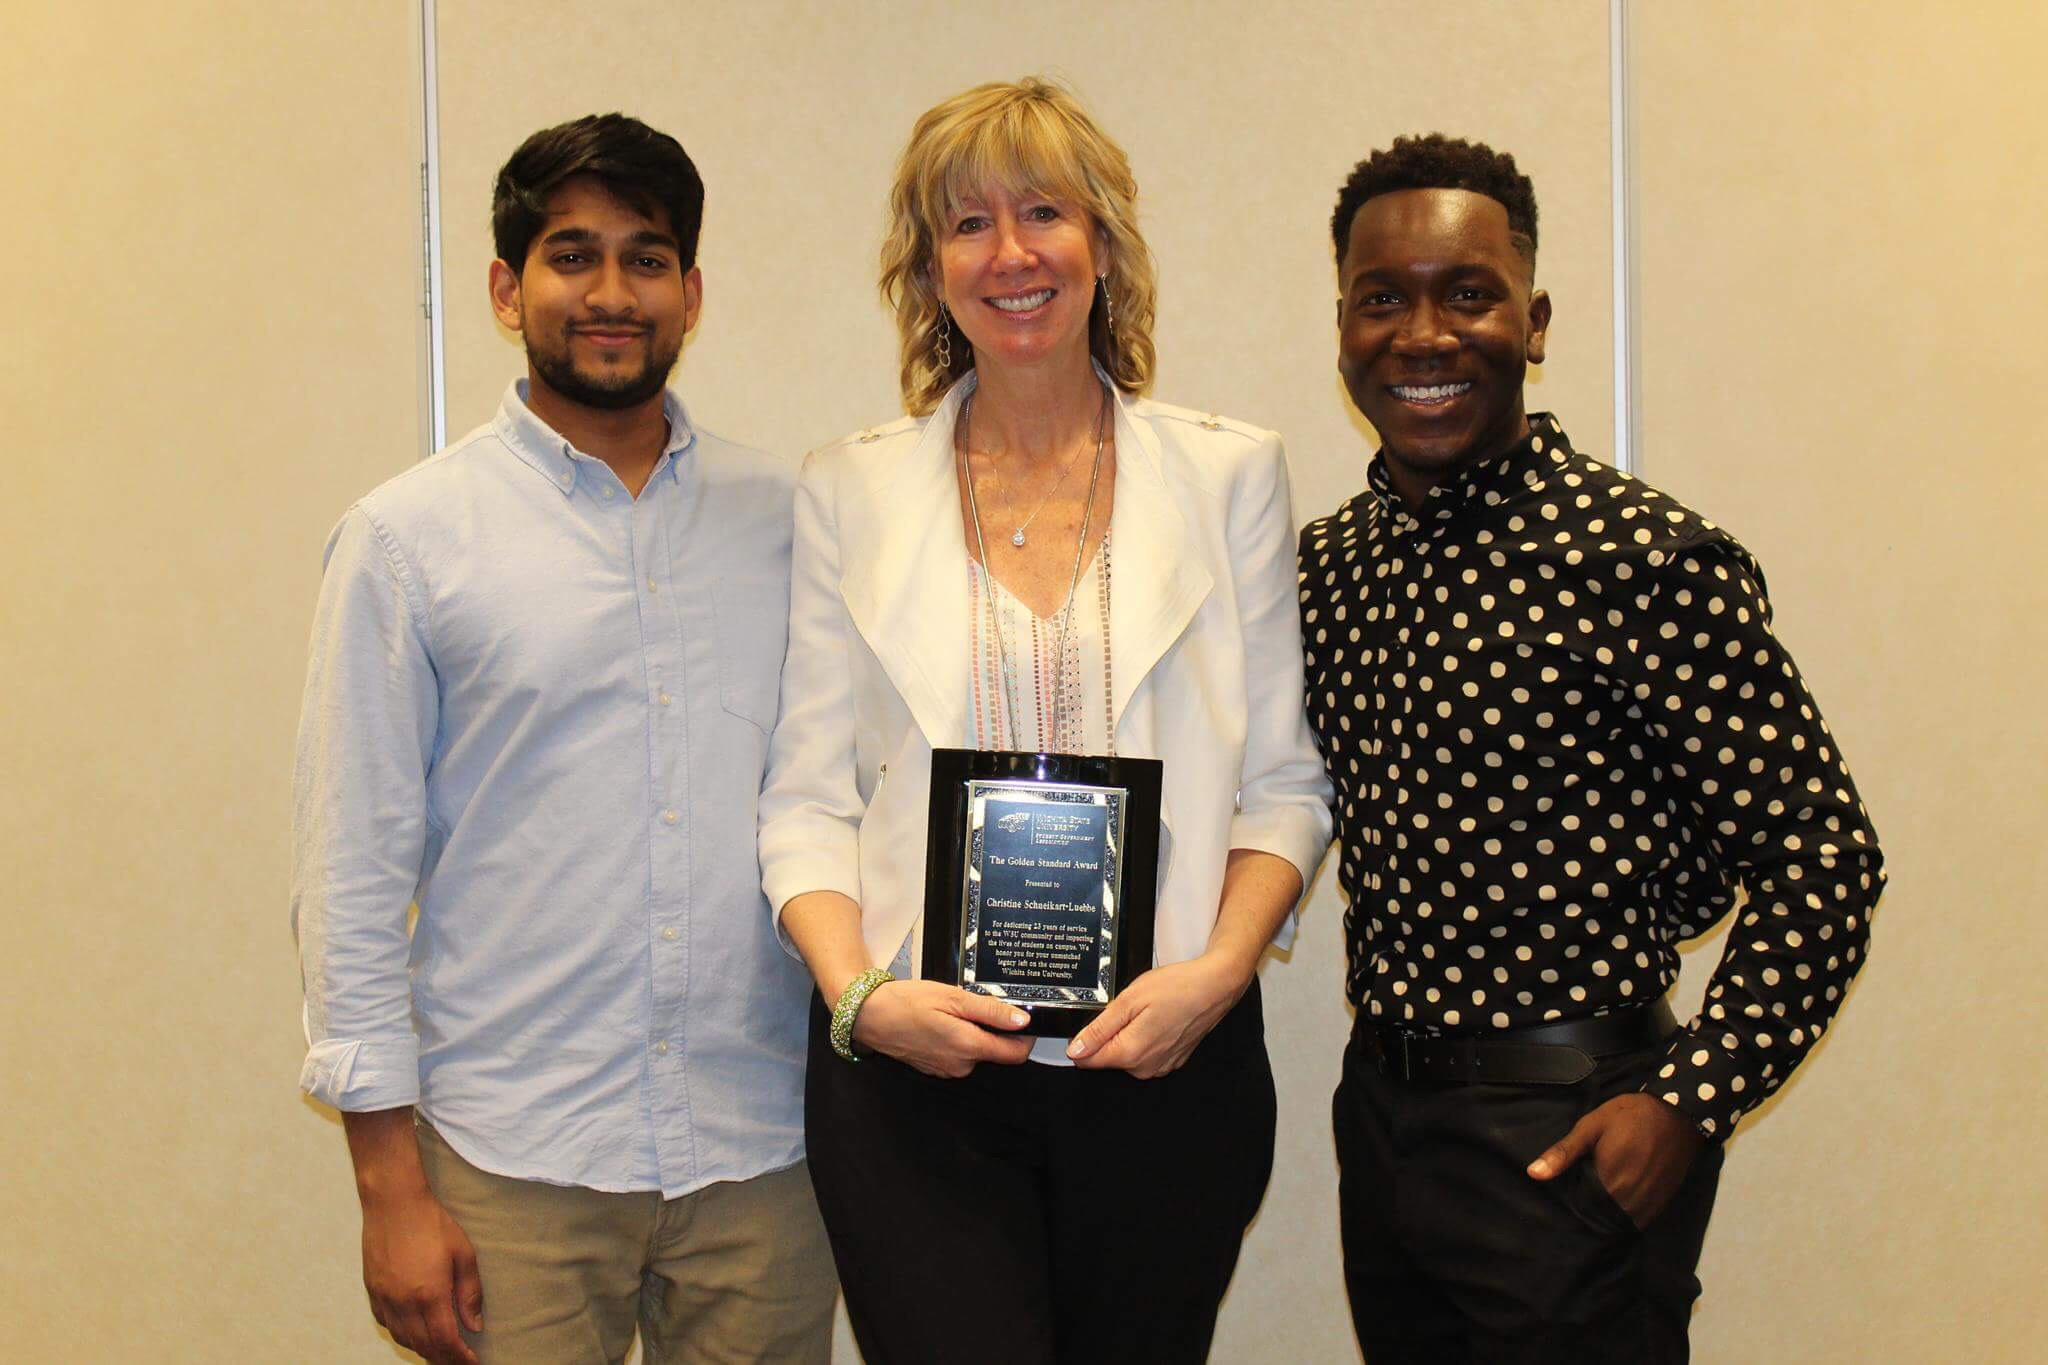 From left to right: Former Student Body Vice President Taben Azad, former Associate Vice President of Student Affairs and Dean of Students Christine Schneikart-Luebbe and former Student Body President Joseph Shepard